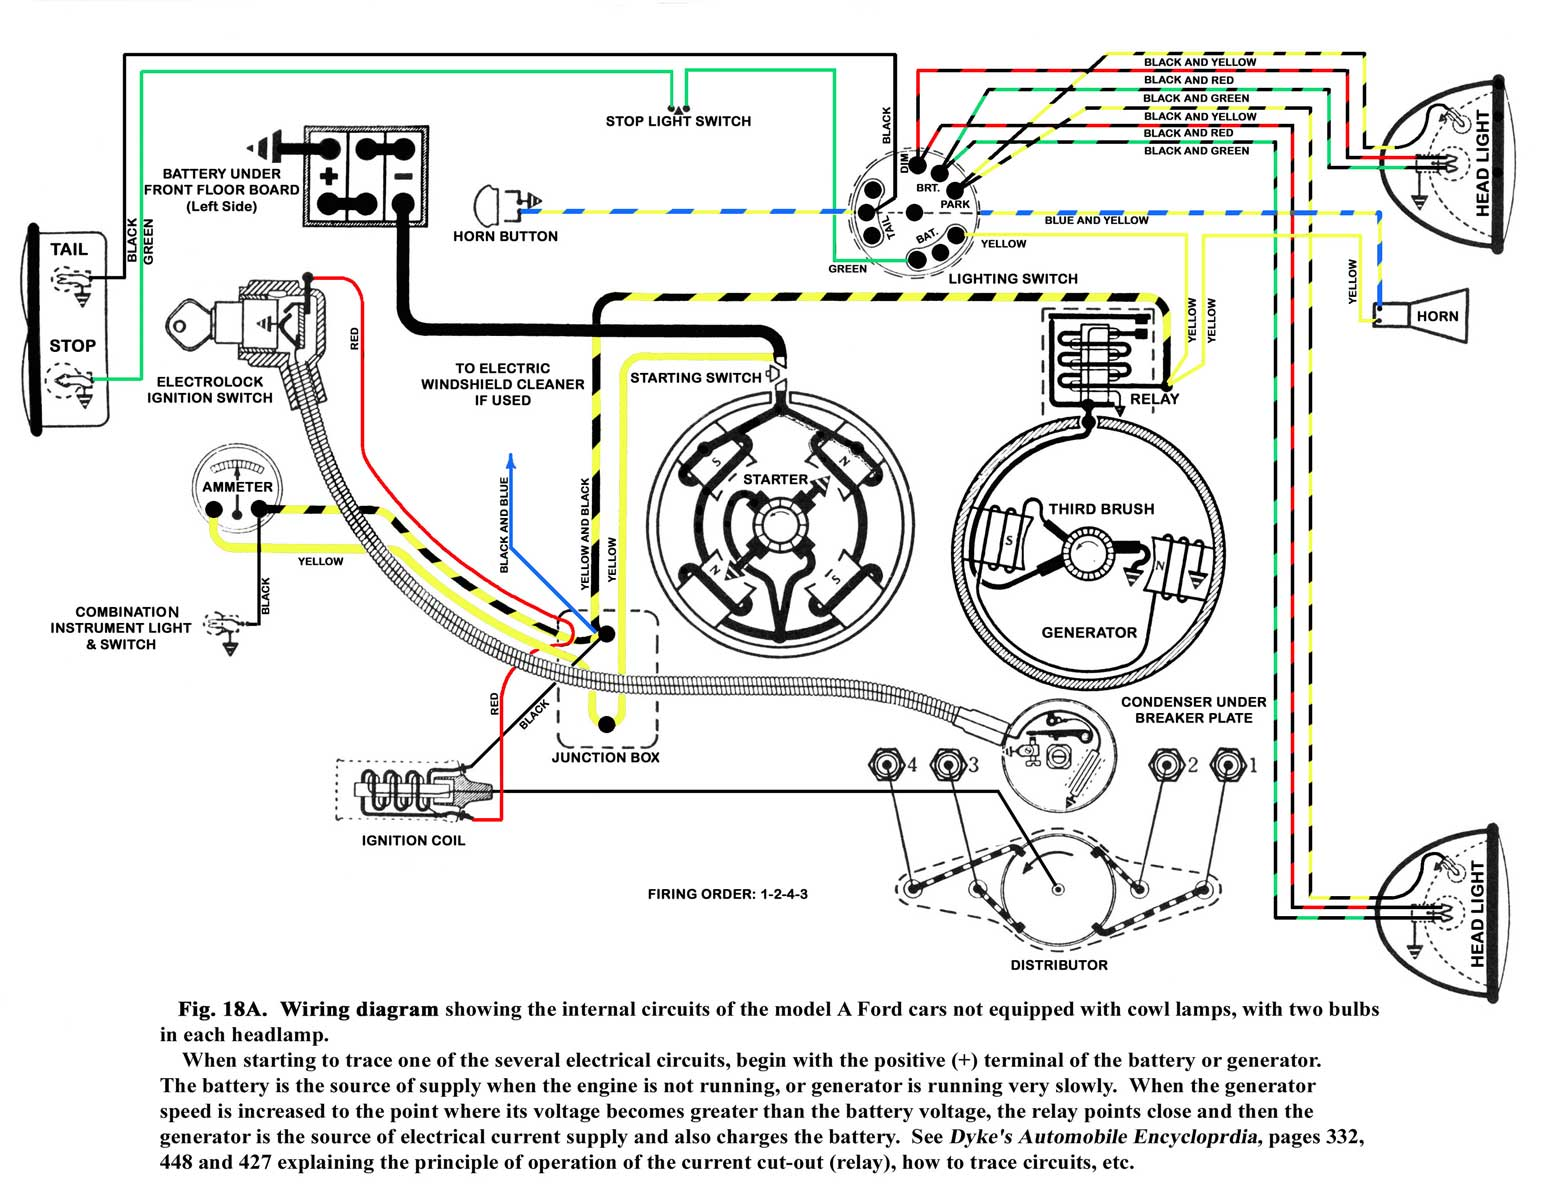 Model A Wiring Diagram - Capitol A's